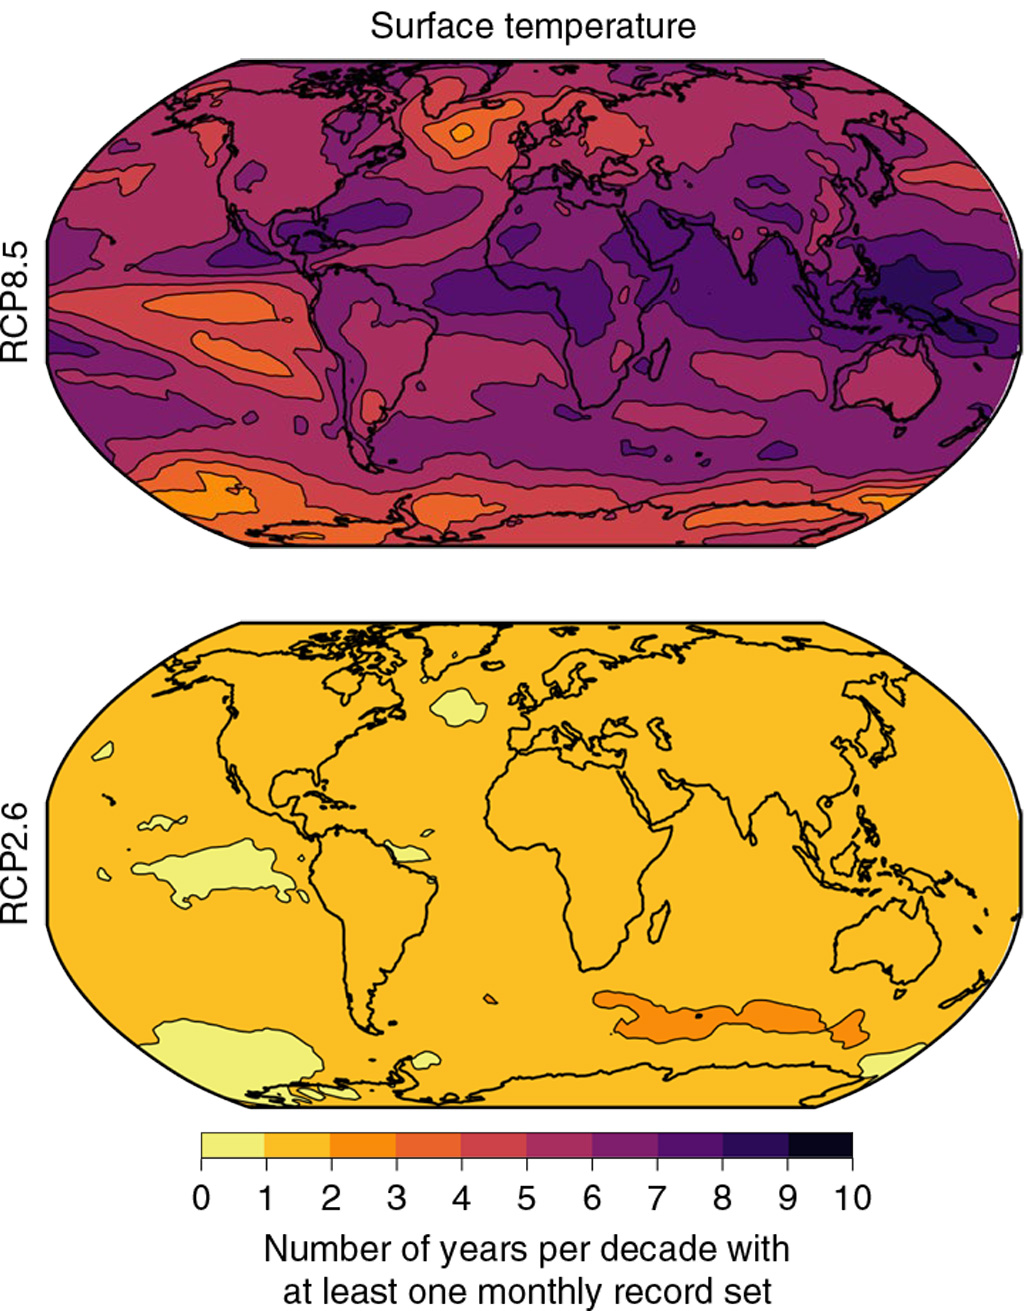 Maps indicating the number of years per decade where new temperature records are set in at least one month in the future period of 2070-99 under a high emissions scenario (top) and a scenario where warming is limited to below 2C (bottom). Source: Power & Delage (2019)